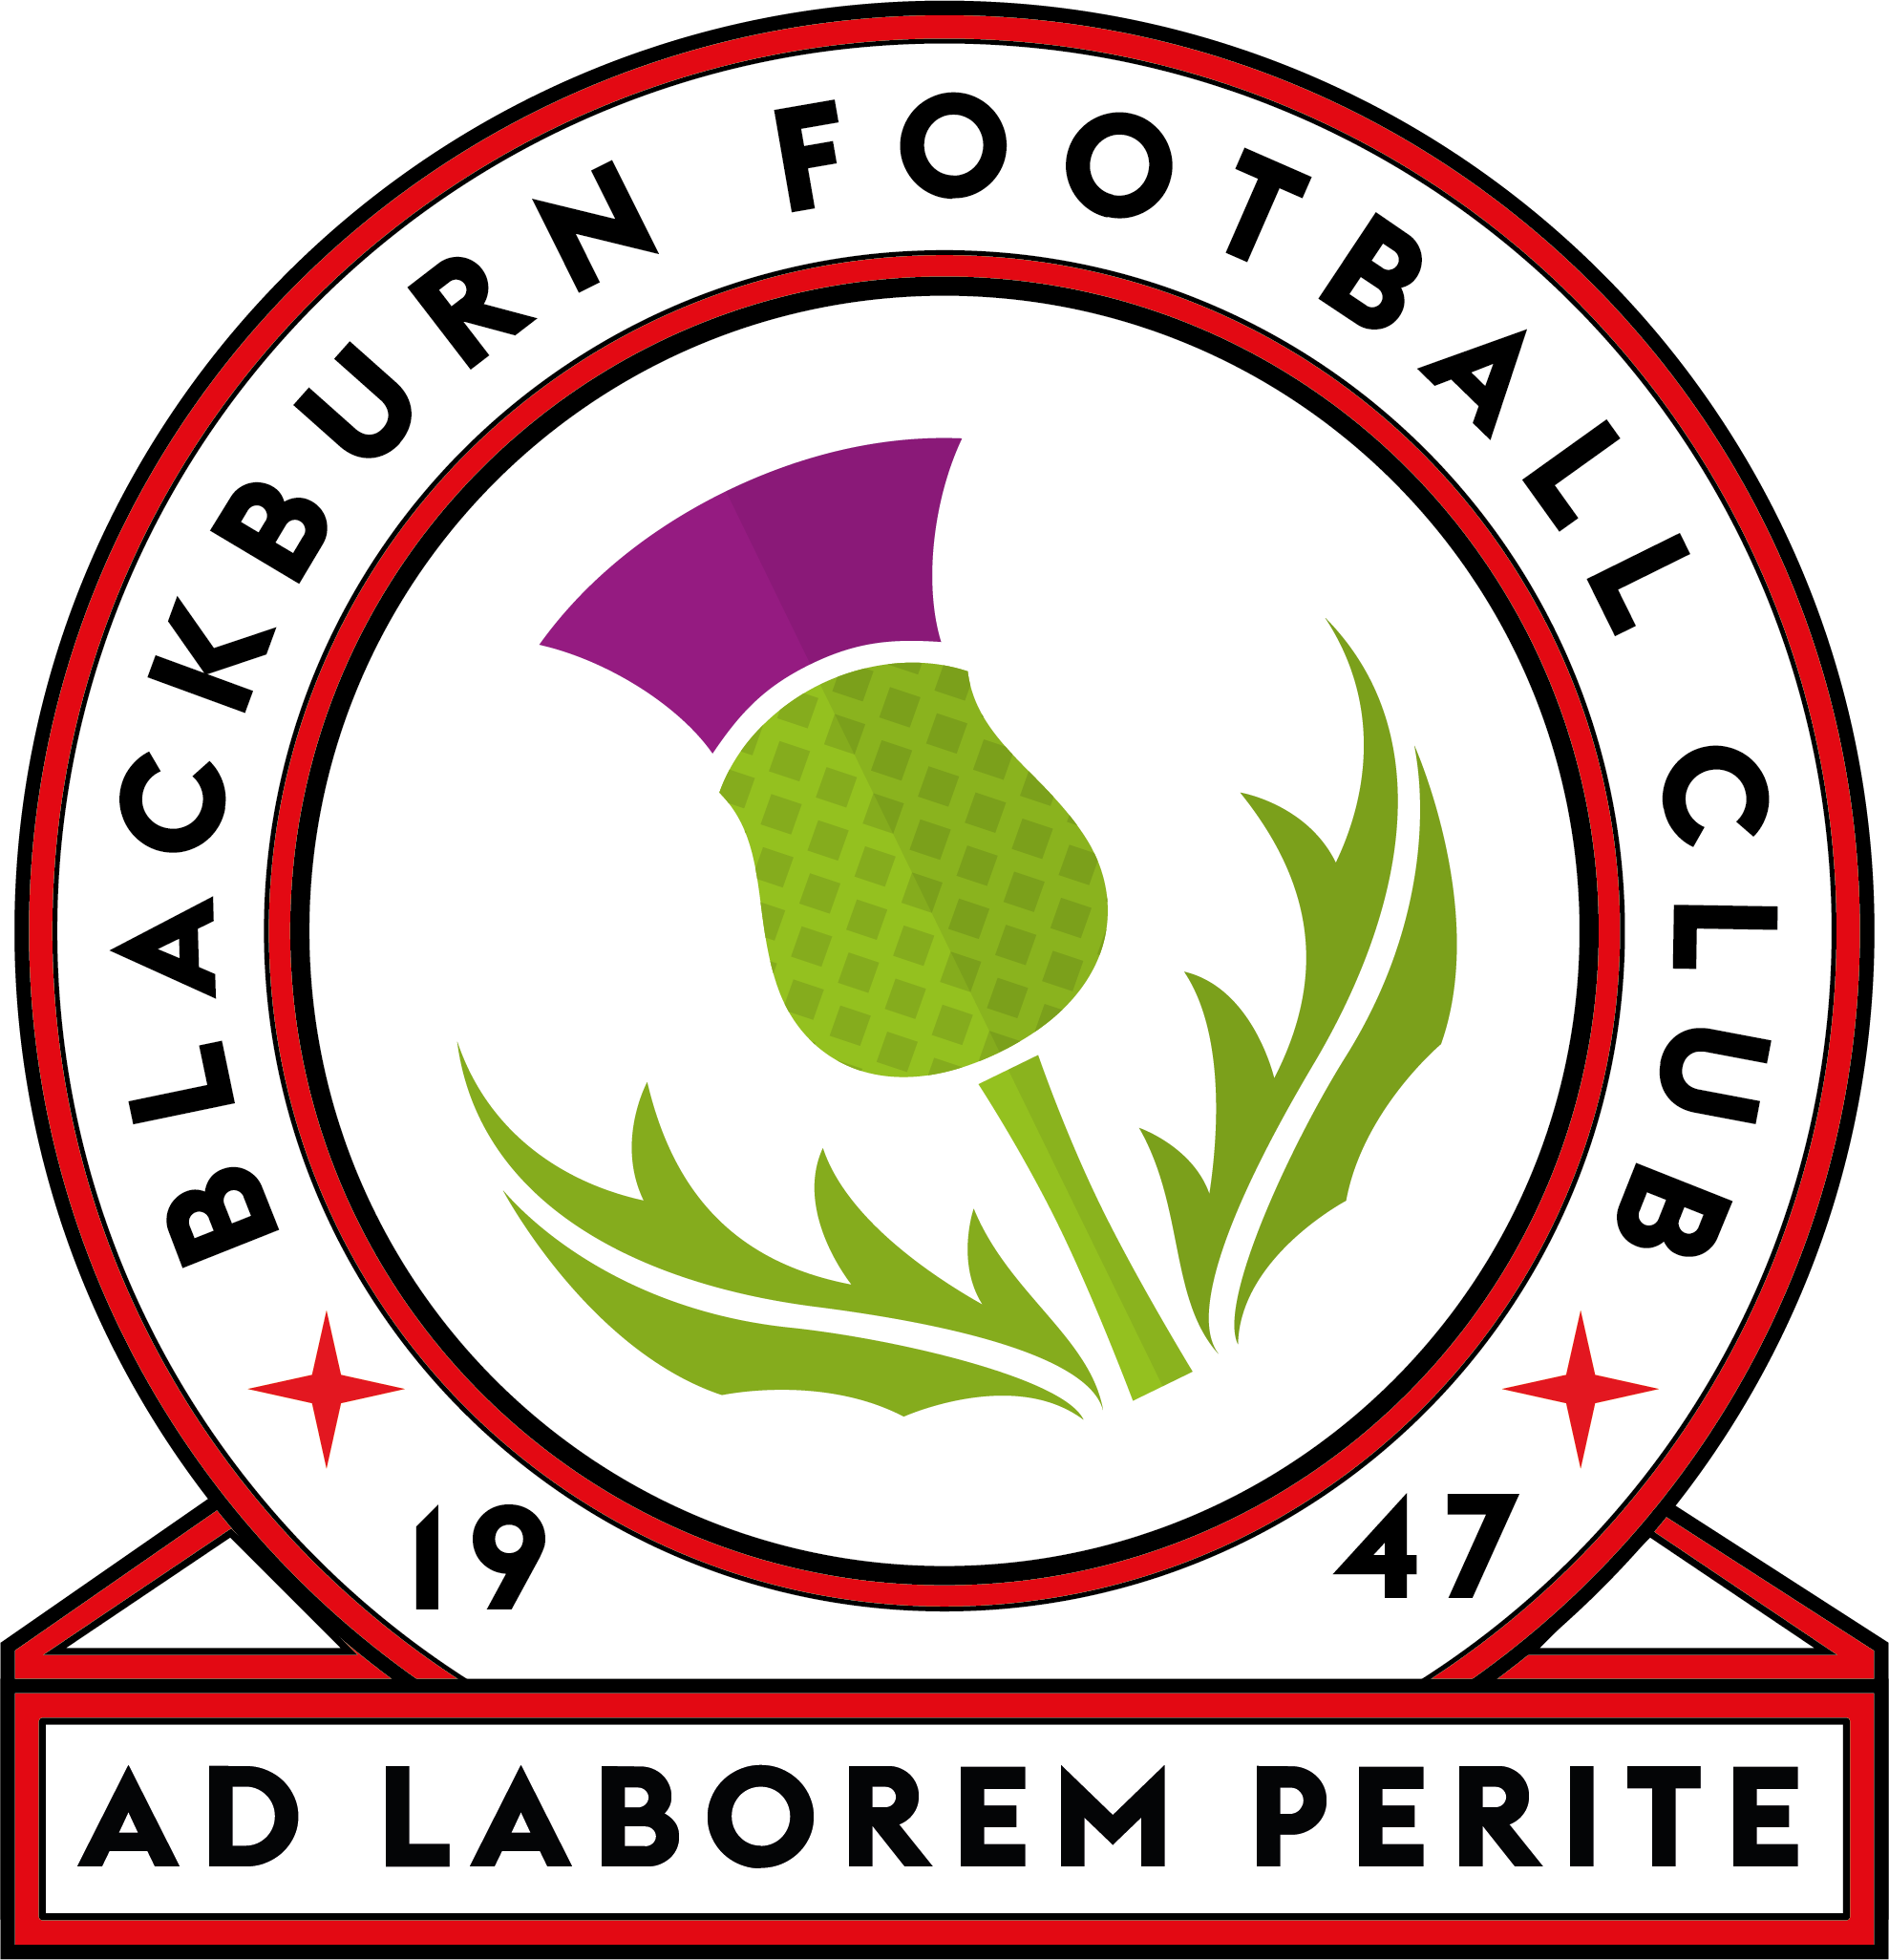 Blackburn AFC